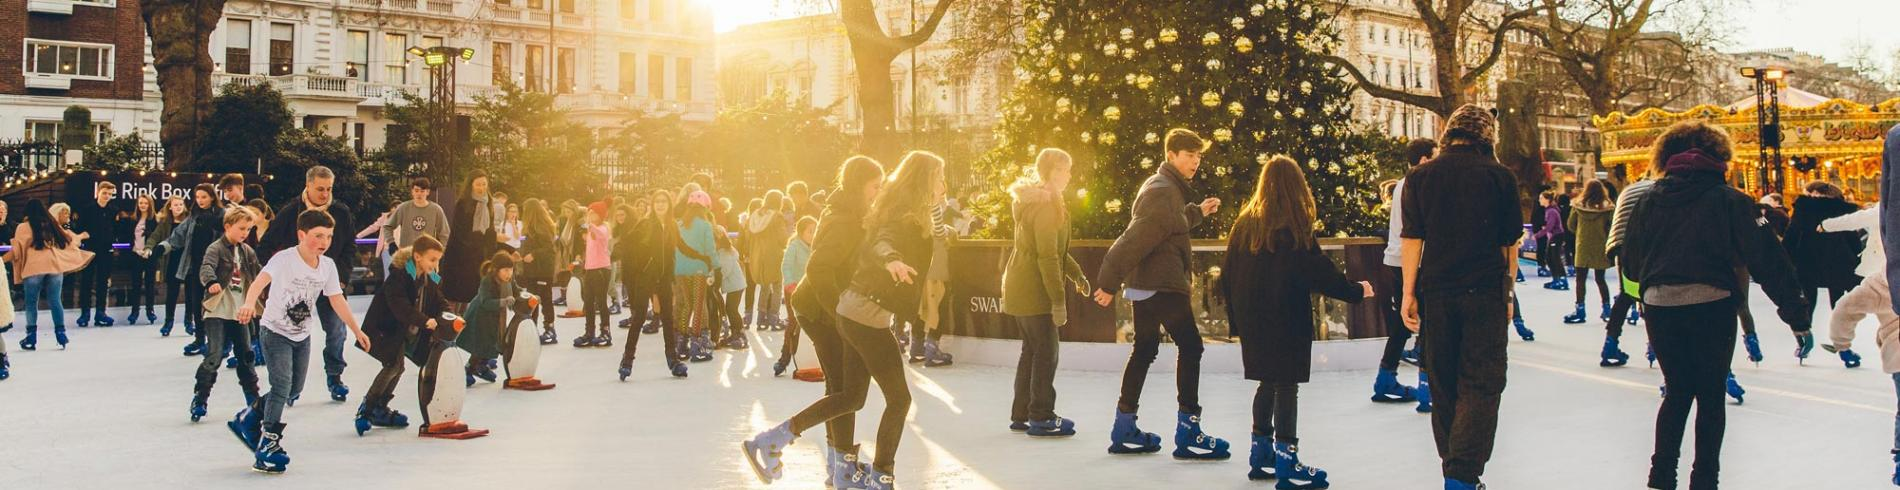 People skating on The Natural History Museum's annual ice-rink